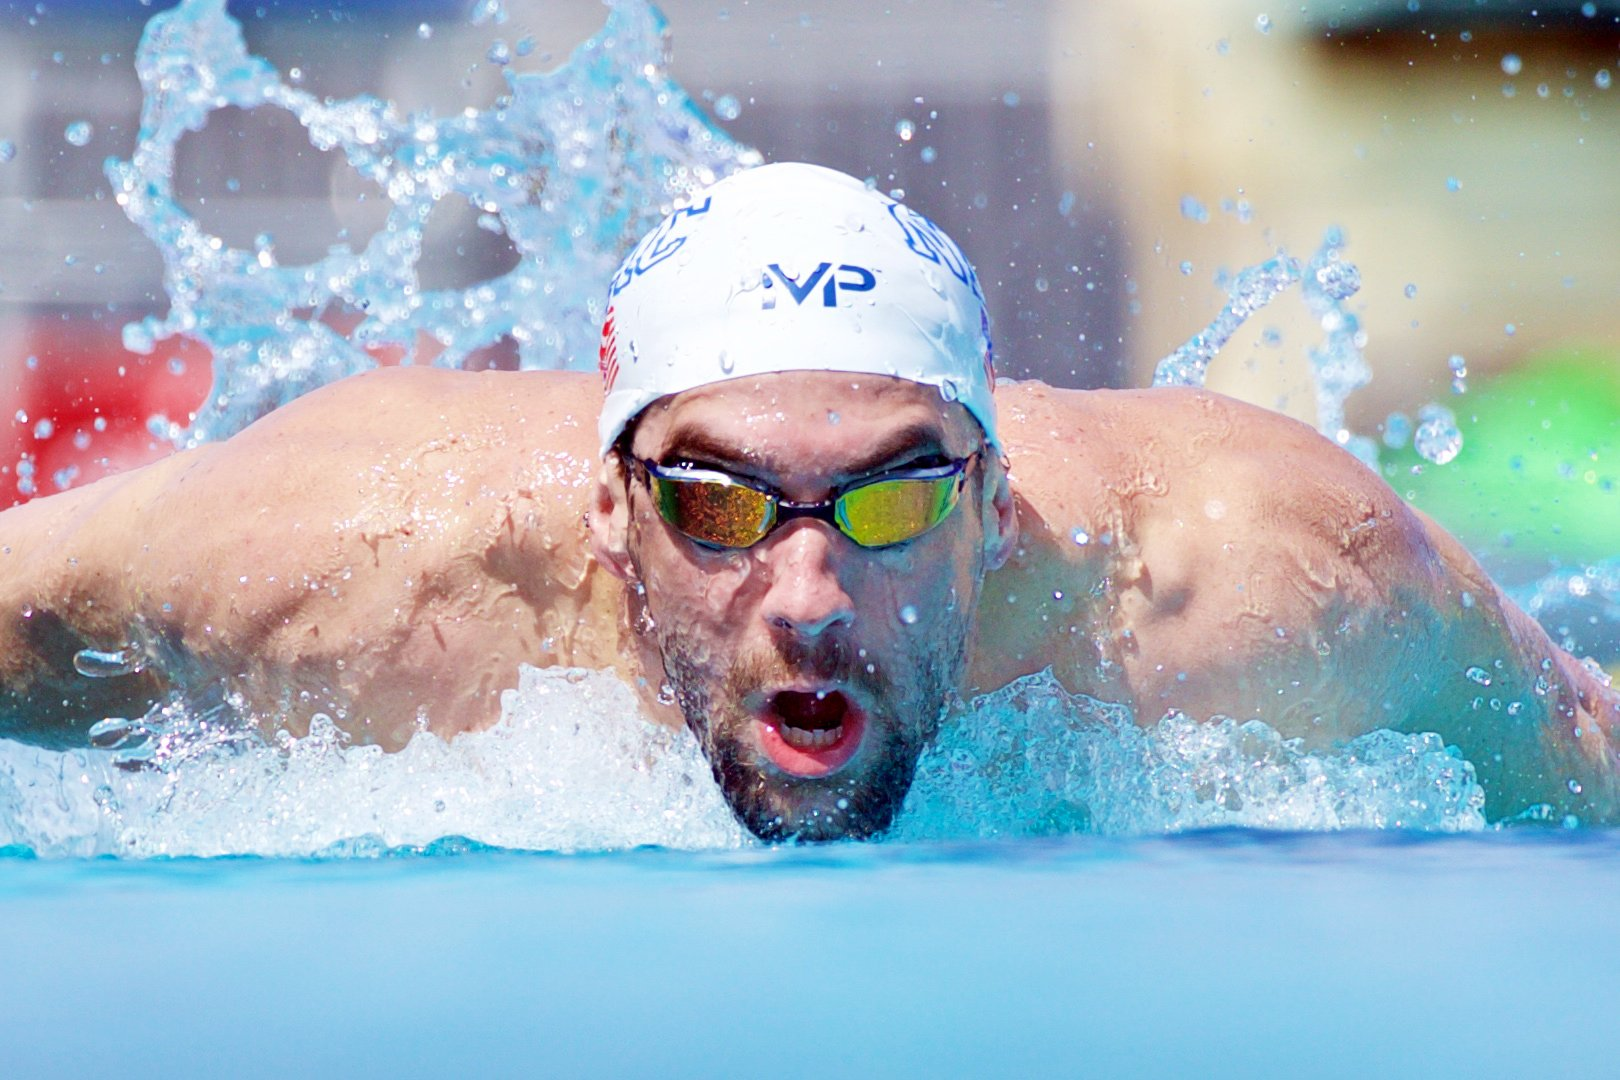 MP Michael Phelps XCEED Swimming Goggles, Mirrored Lens, Yellow/Black Frame by MP Michael Phelps (Image #4)